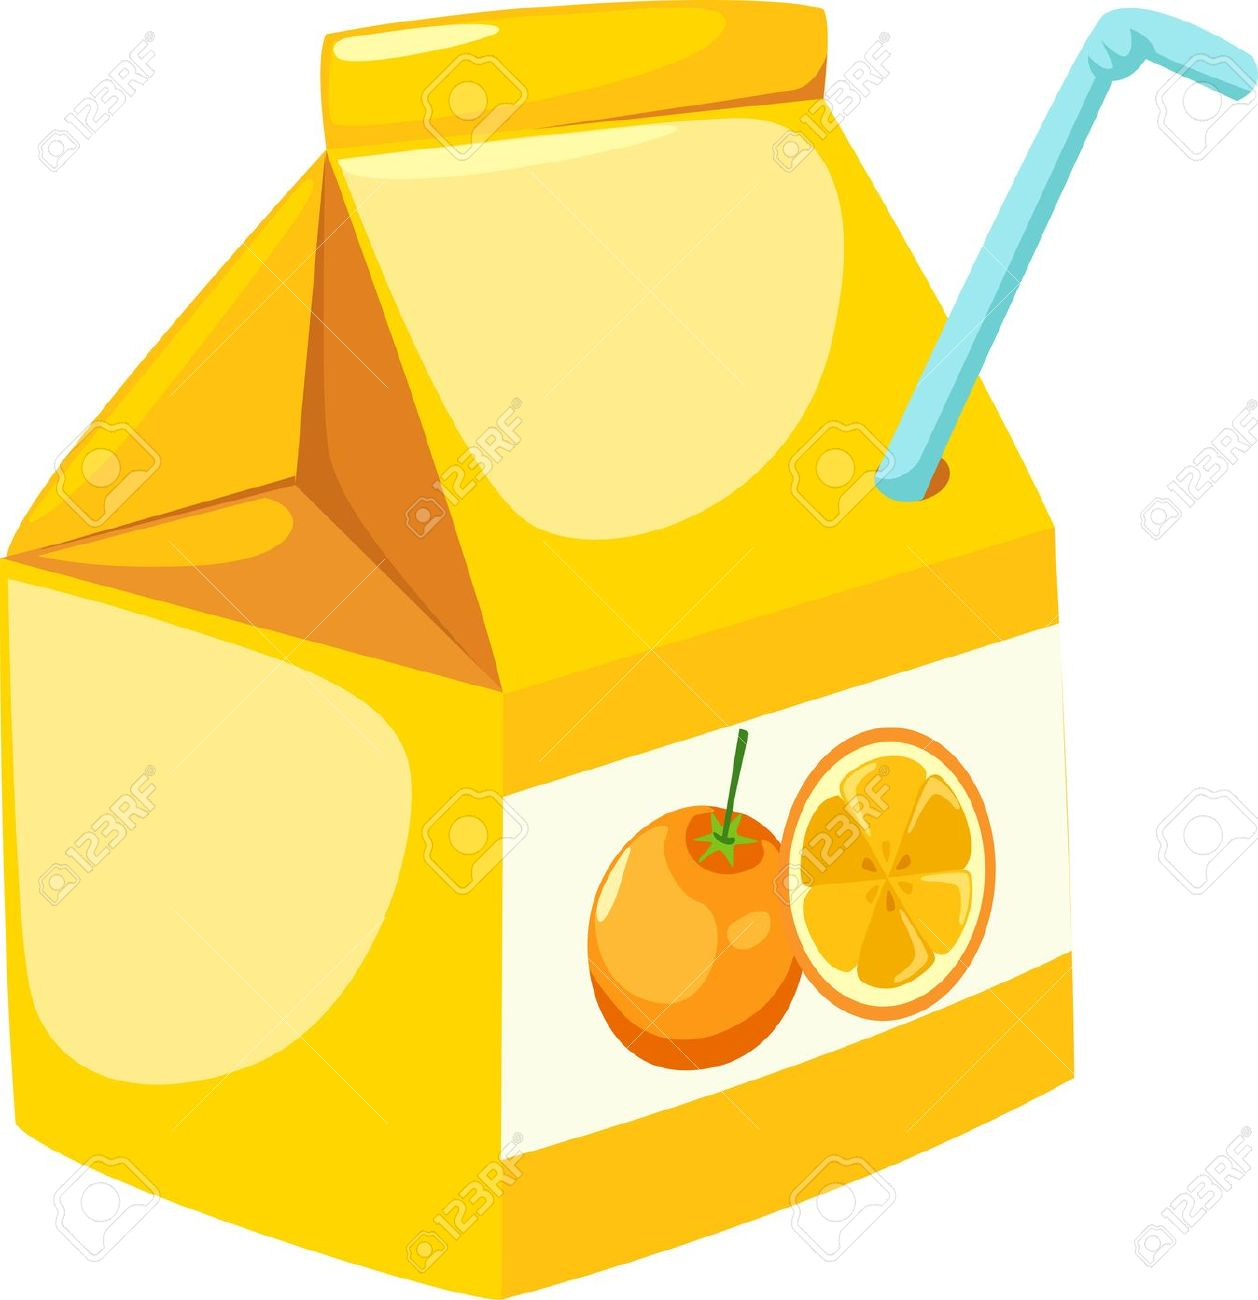 Orange Juice Bottle Clipart.